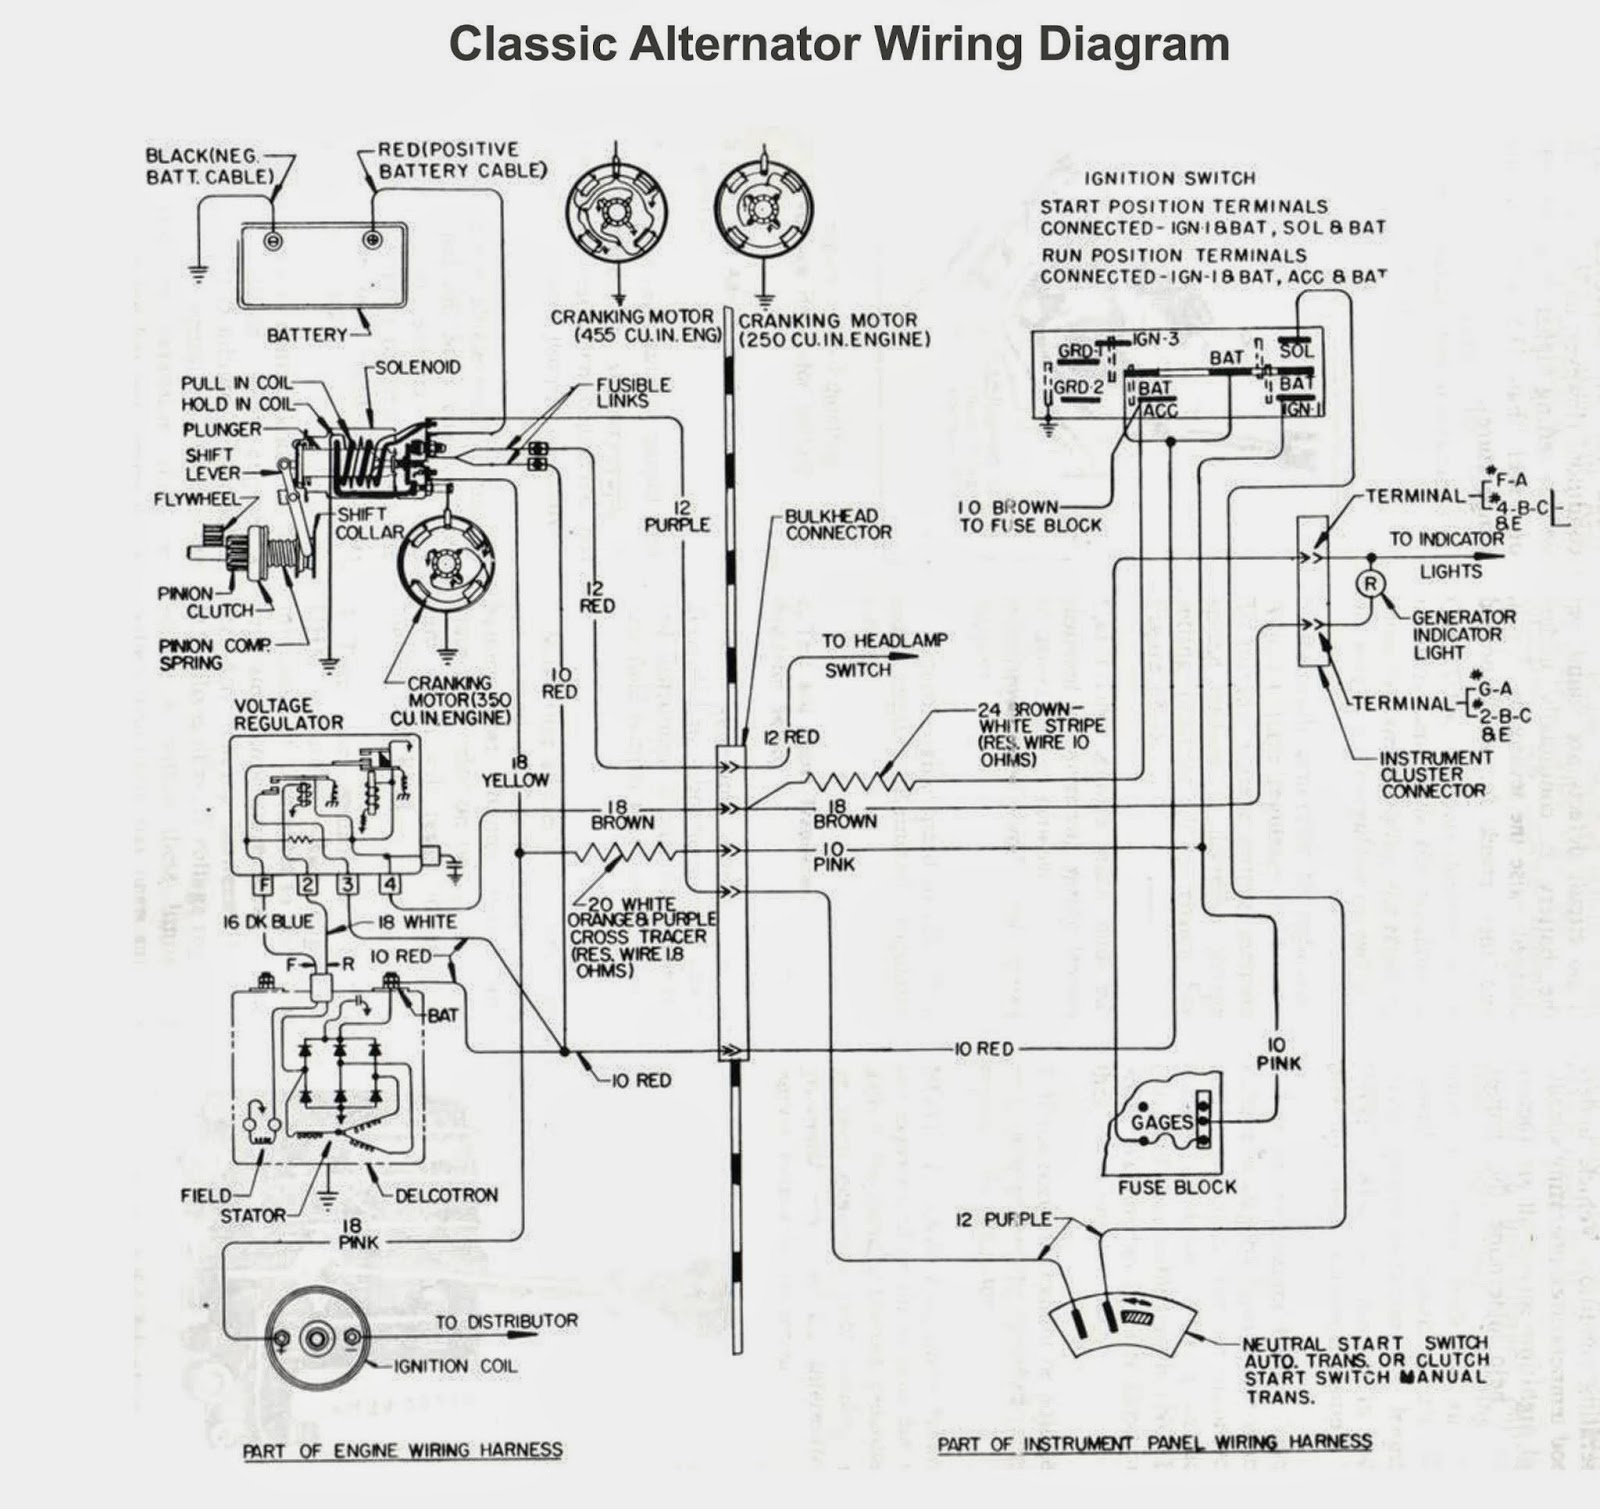 1969 Camaro Alternator Wiring Diagram Schematic | Wiring Schematic on 1970 camaro rear, 1970 camaro big block, 1970 camaro specification, 1970 camaro door, 1970 camaro starter, 1970 camaro frame, 1970 camaro wiper motor, 1970 camaro ss 350, 1970 camaro brochure, 1970 camaro exploded view, 1970 camaro voltage regulator, 1970 camaro orange, 1970 camaro headlight, 1970 camaro green, 1970 camaro dimensions, 1970 camaro fuel pump, 1970 camaro engine, 1970 camaro super sport, 1970 camaro exhaust system,